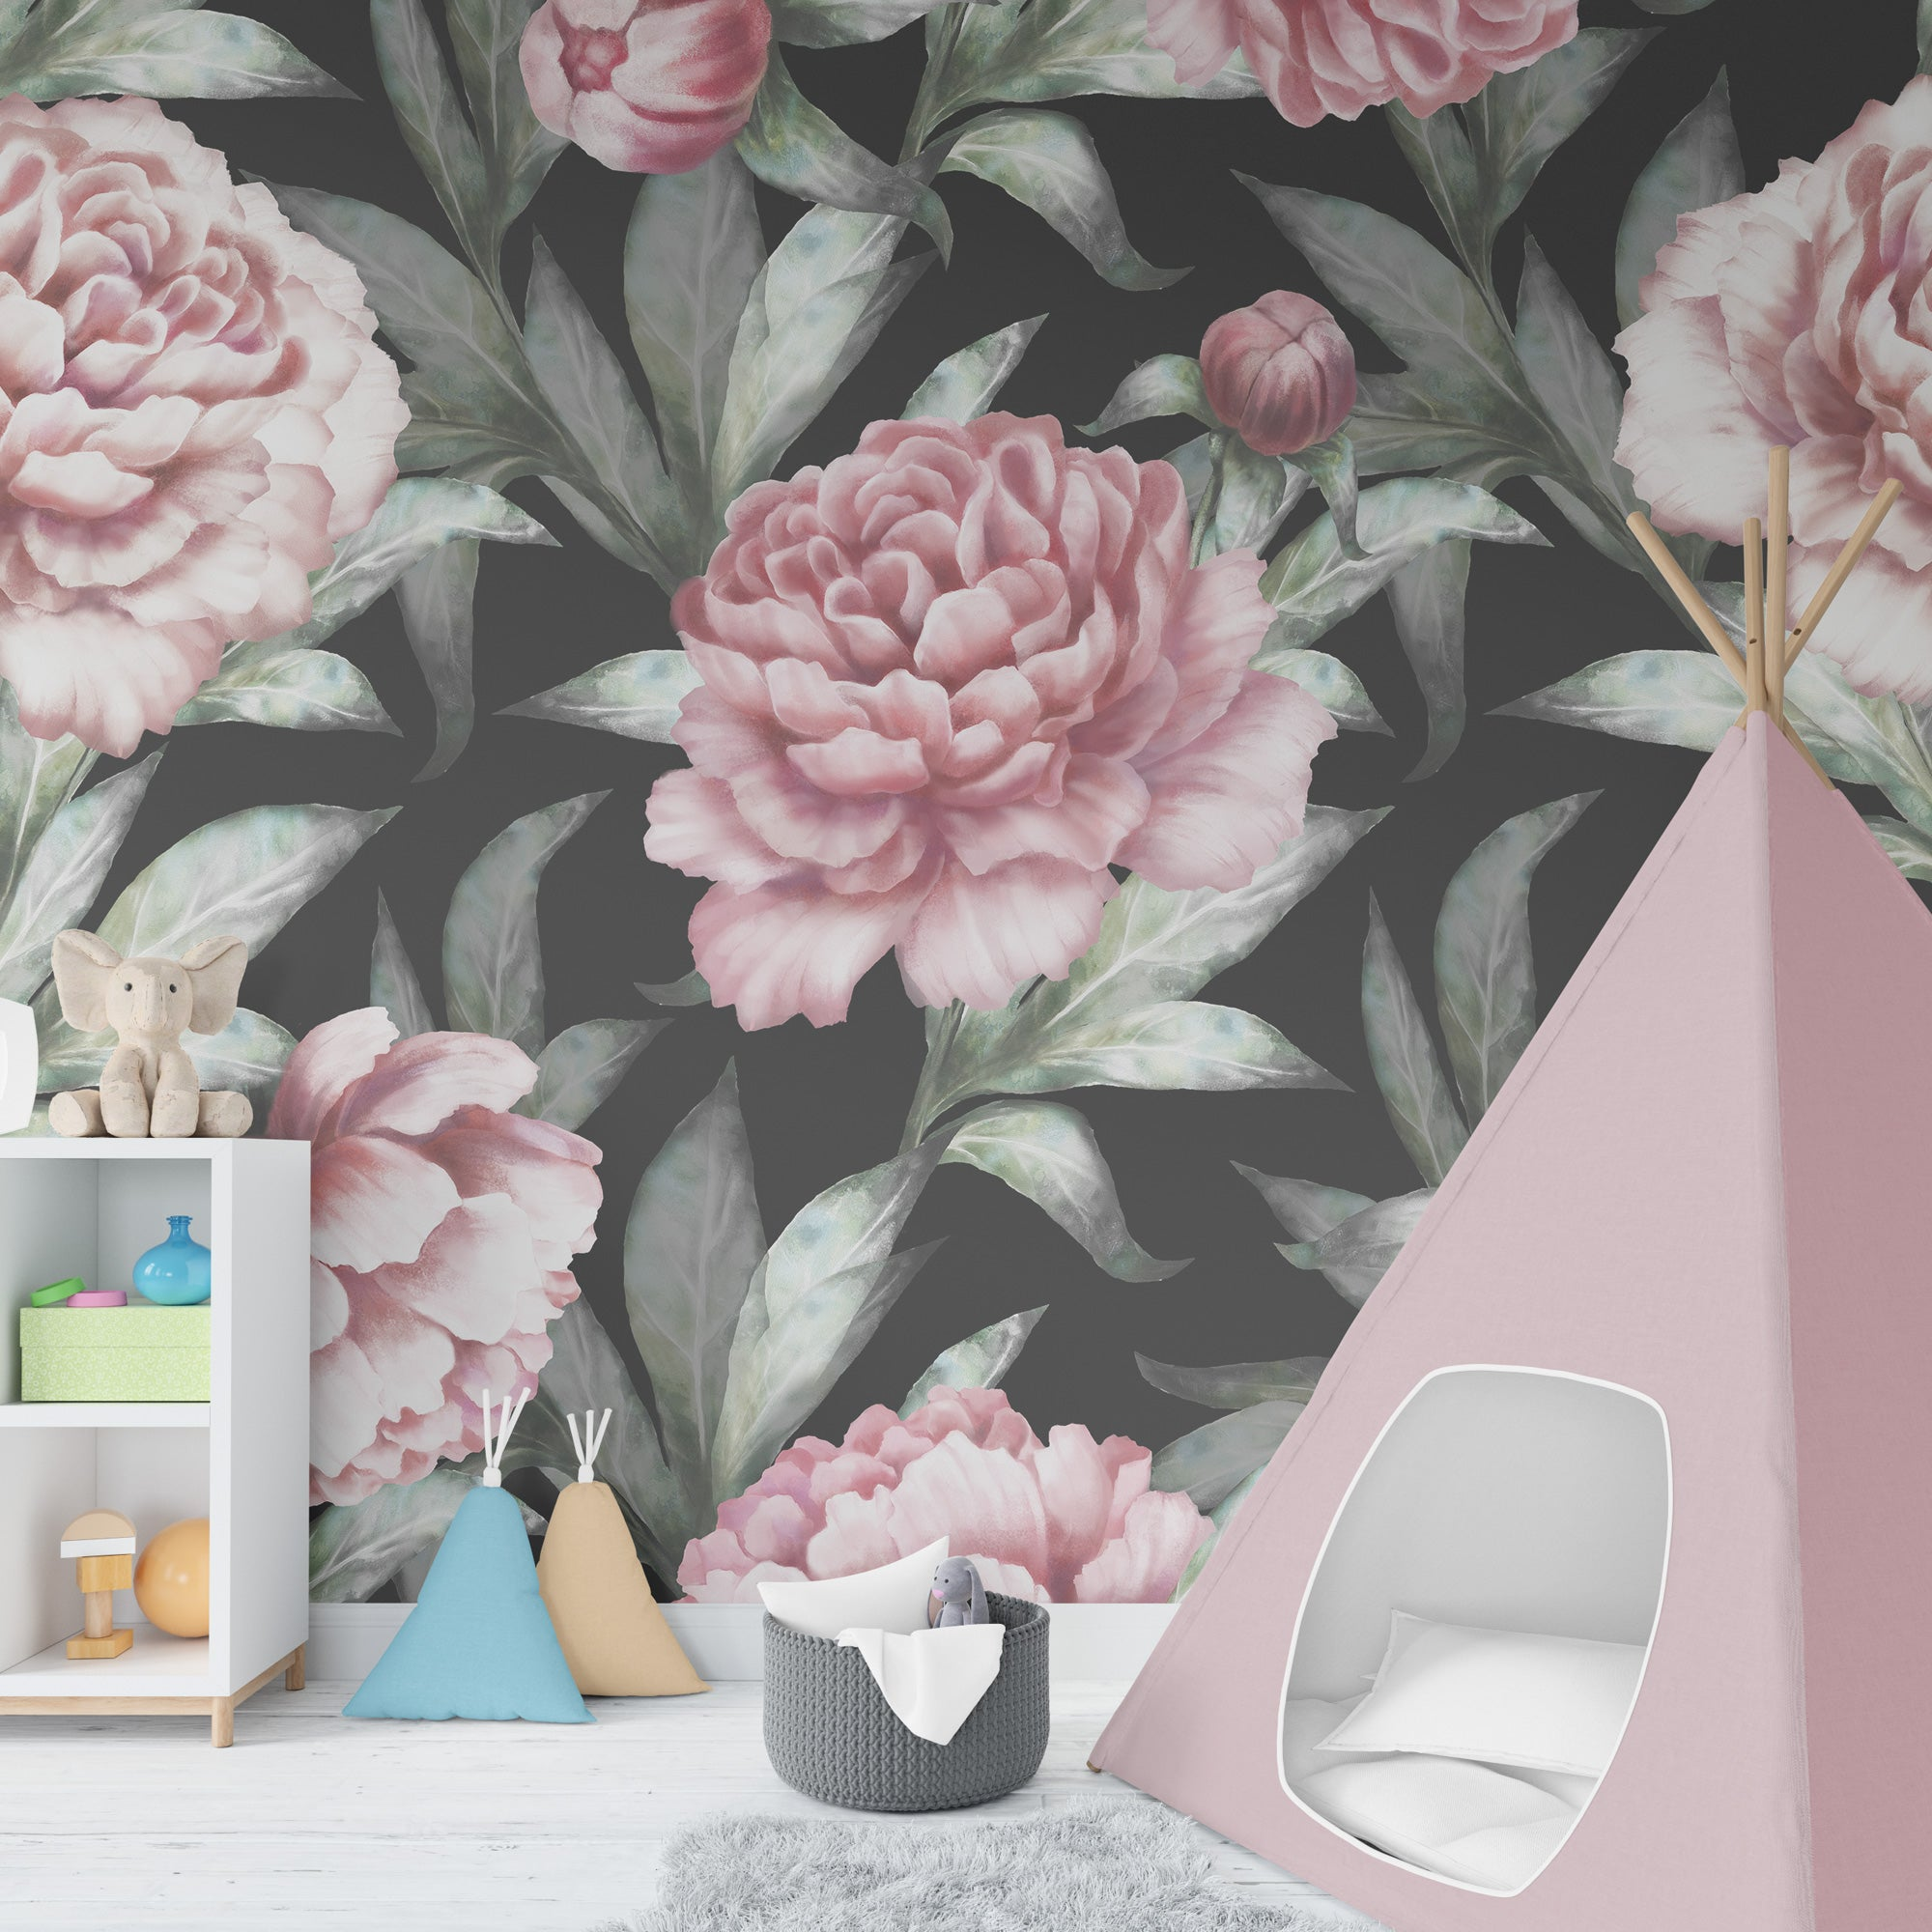 Floral Peel And Stick Wallpaper Floral Wallpaper For Nursery